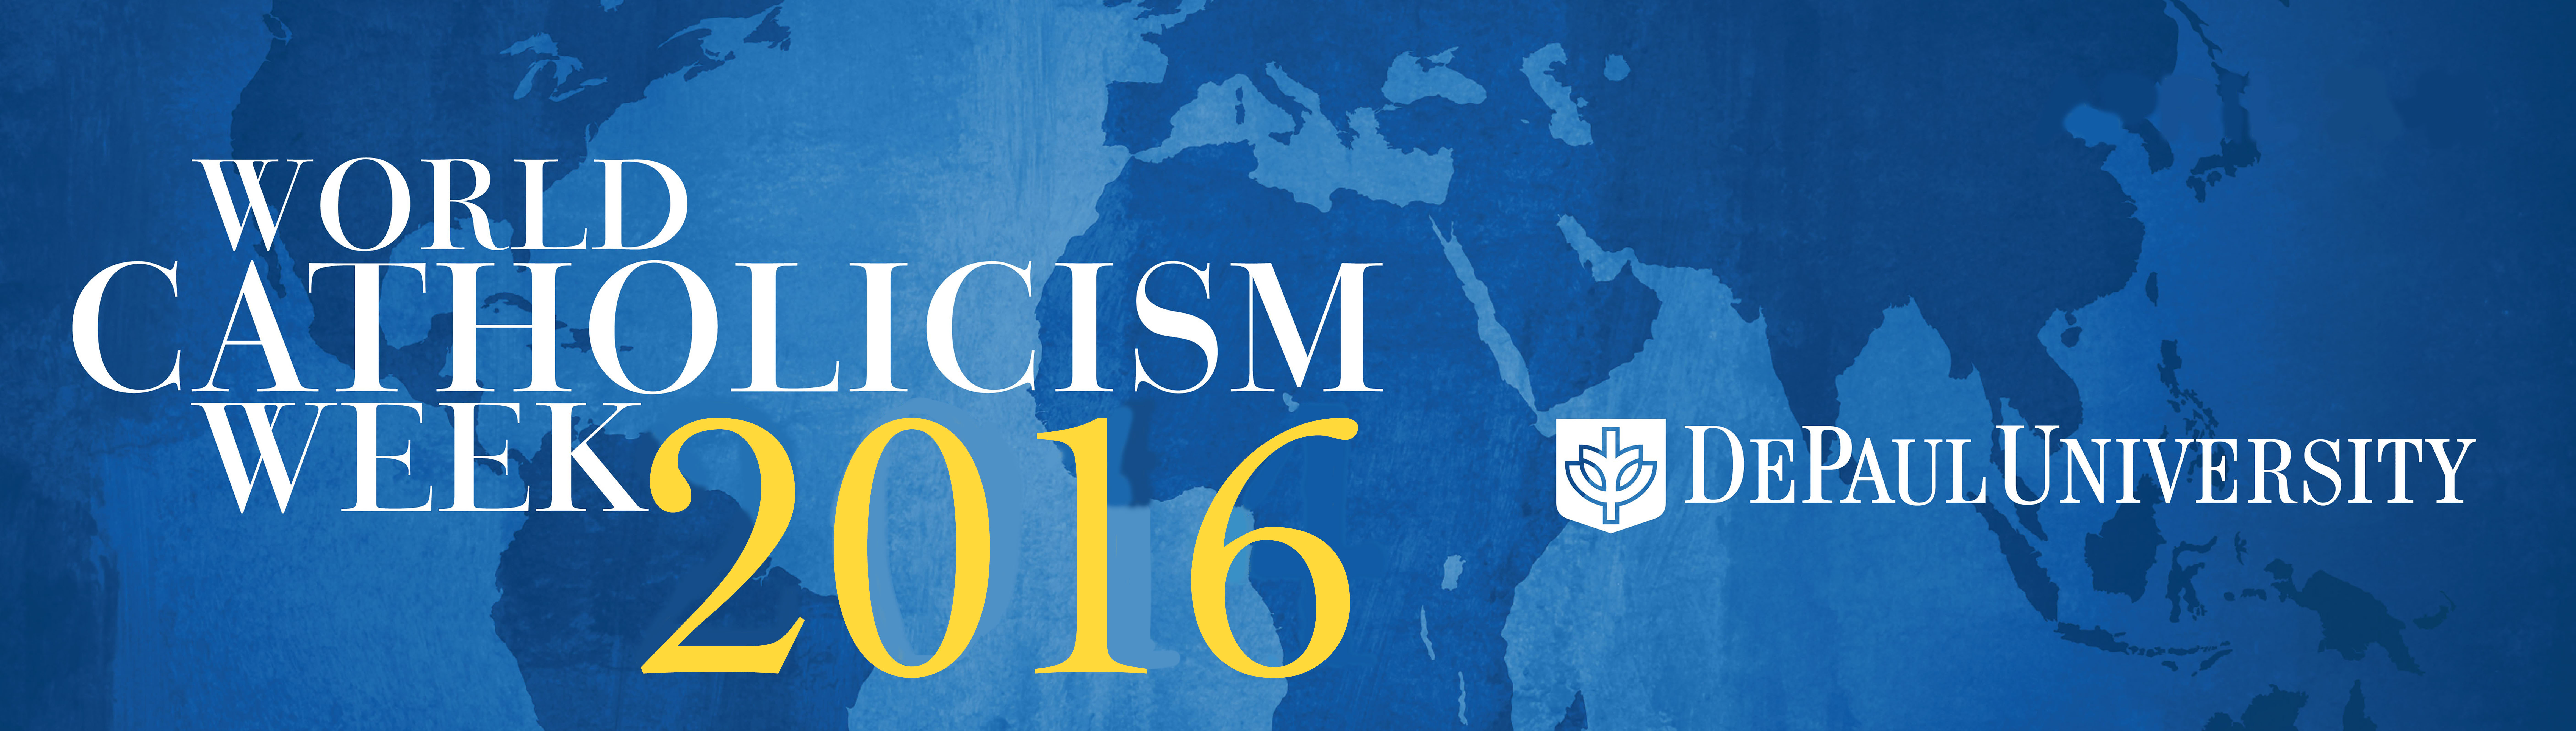 Logo for World Catholicism Week 2016 (April 14-17)